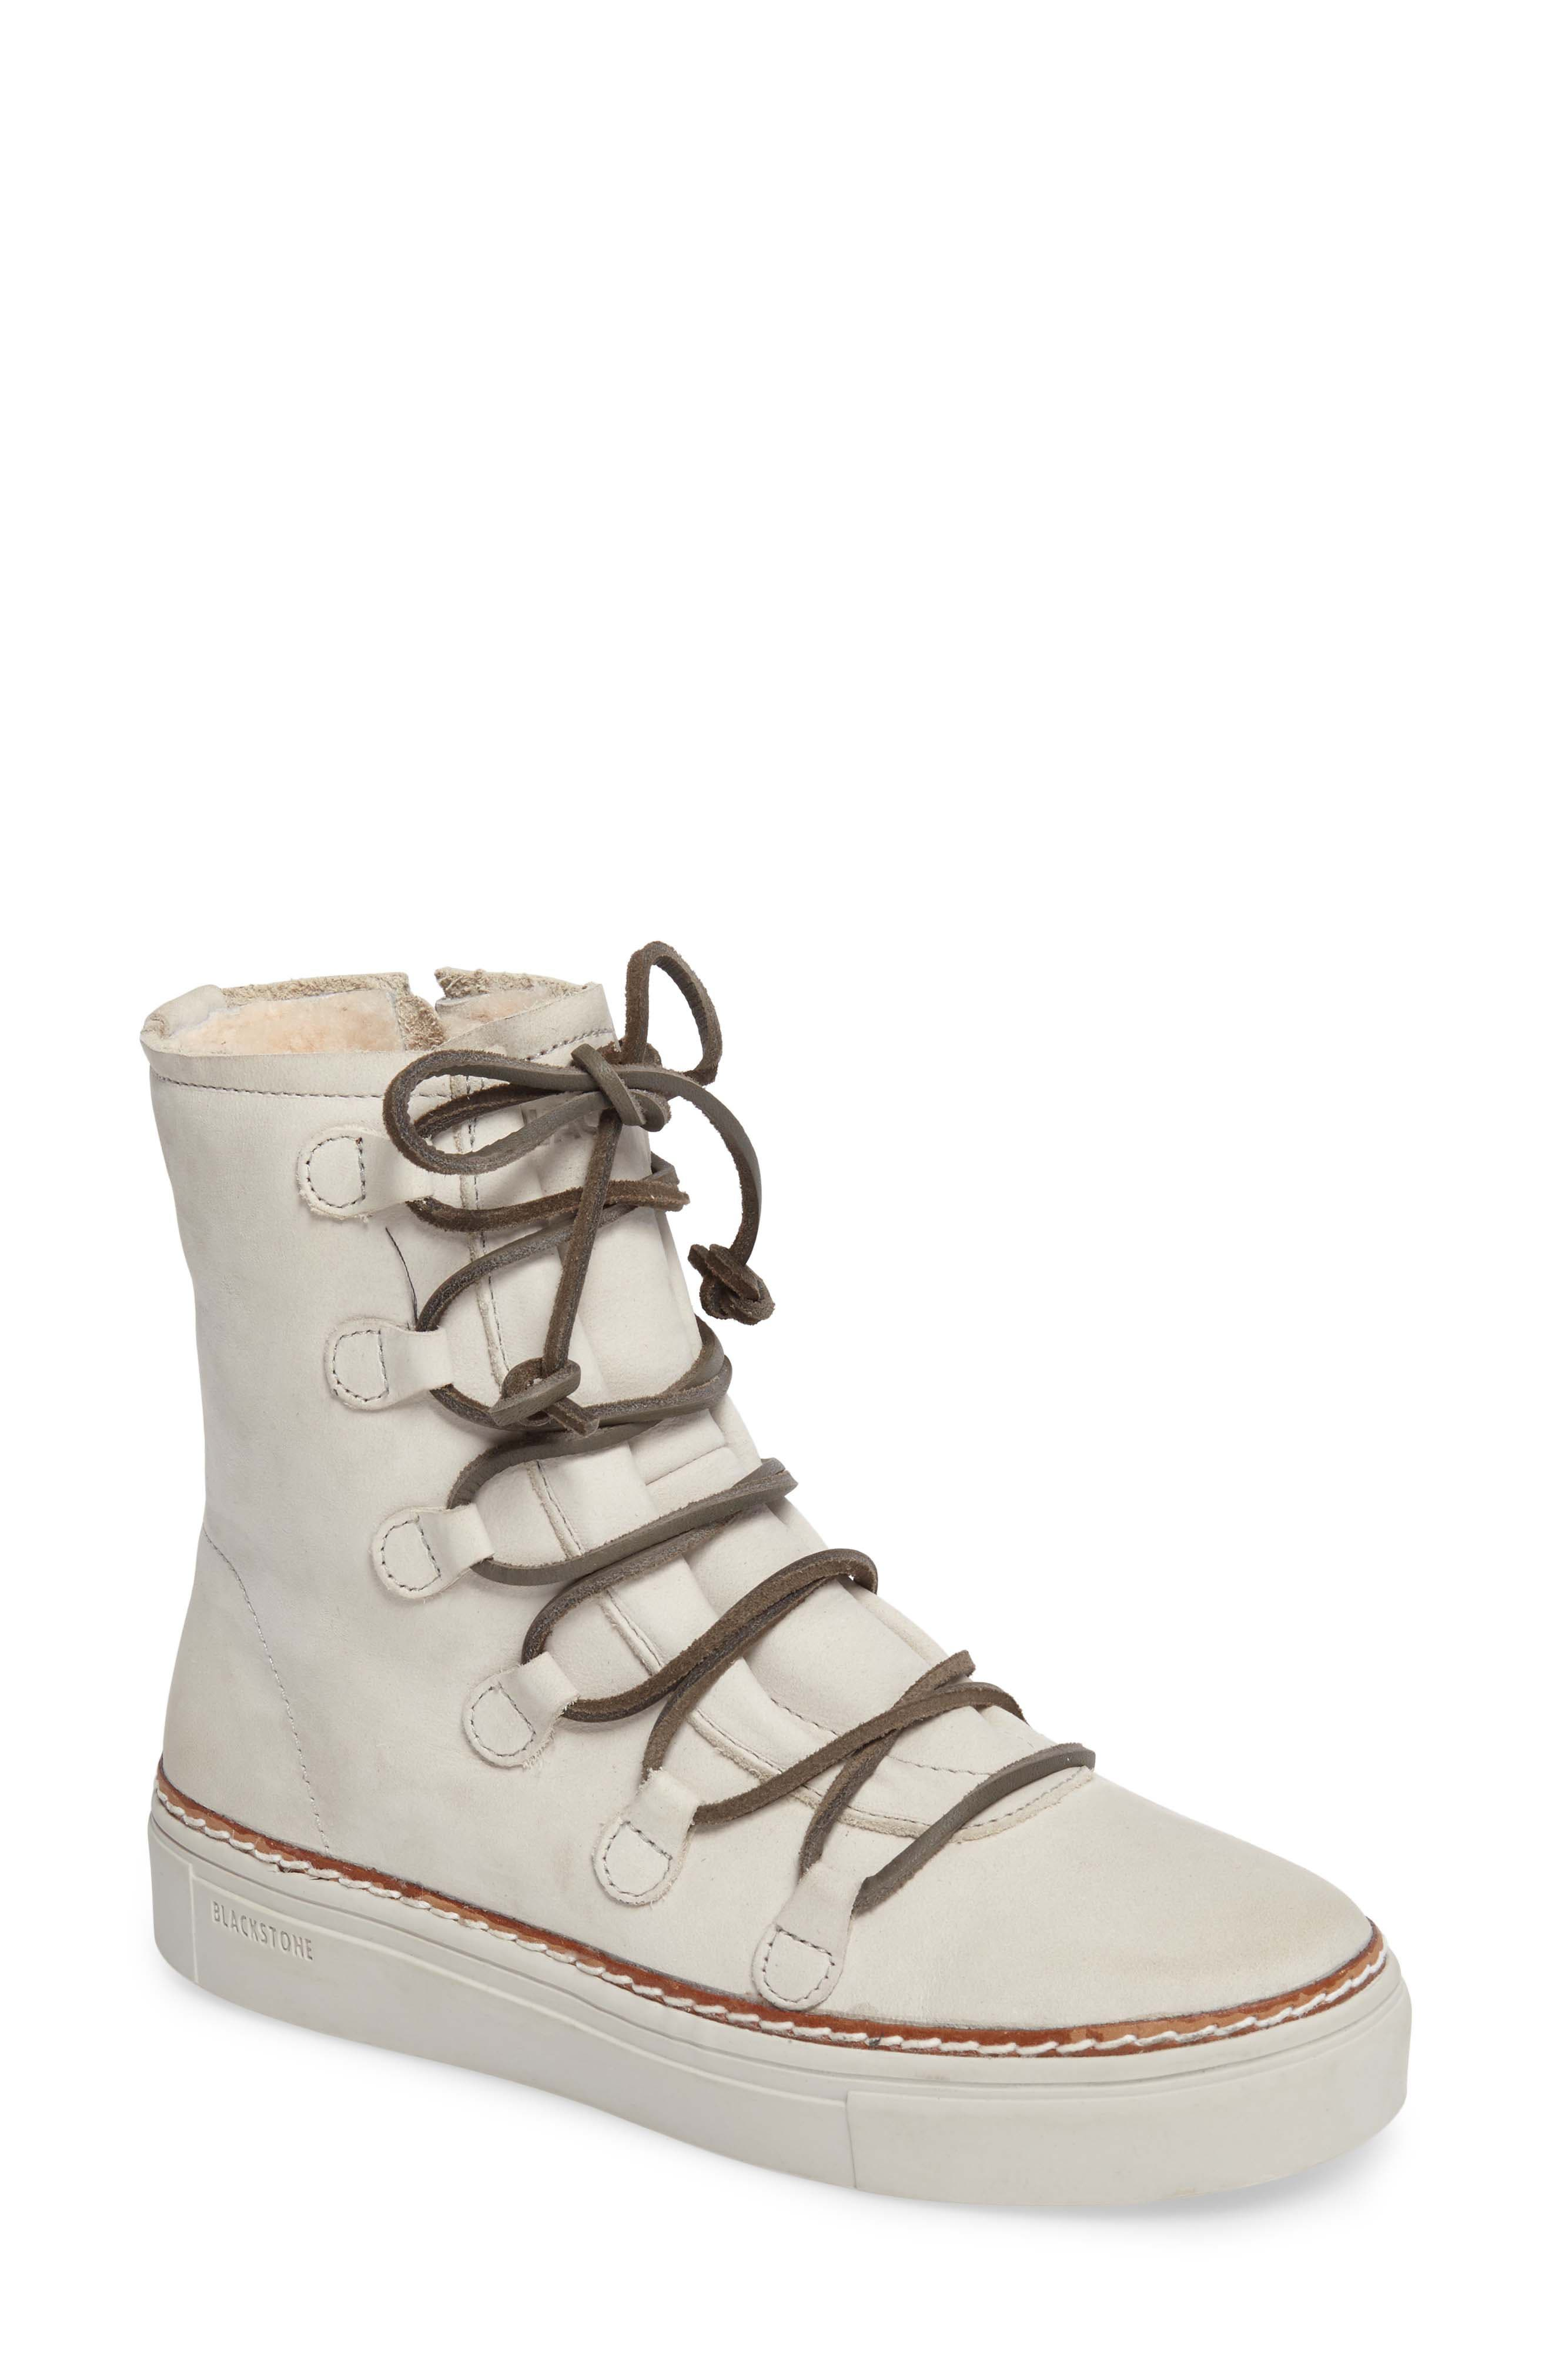 Alternate Image 1 Selected - Blackstone OL26 Genuine Shearling Lined Lace-Up Bootie (Women)